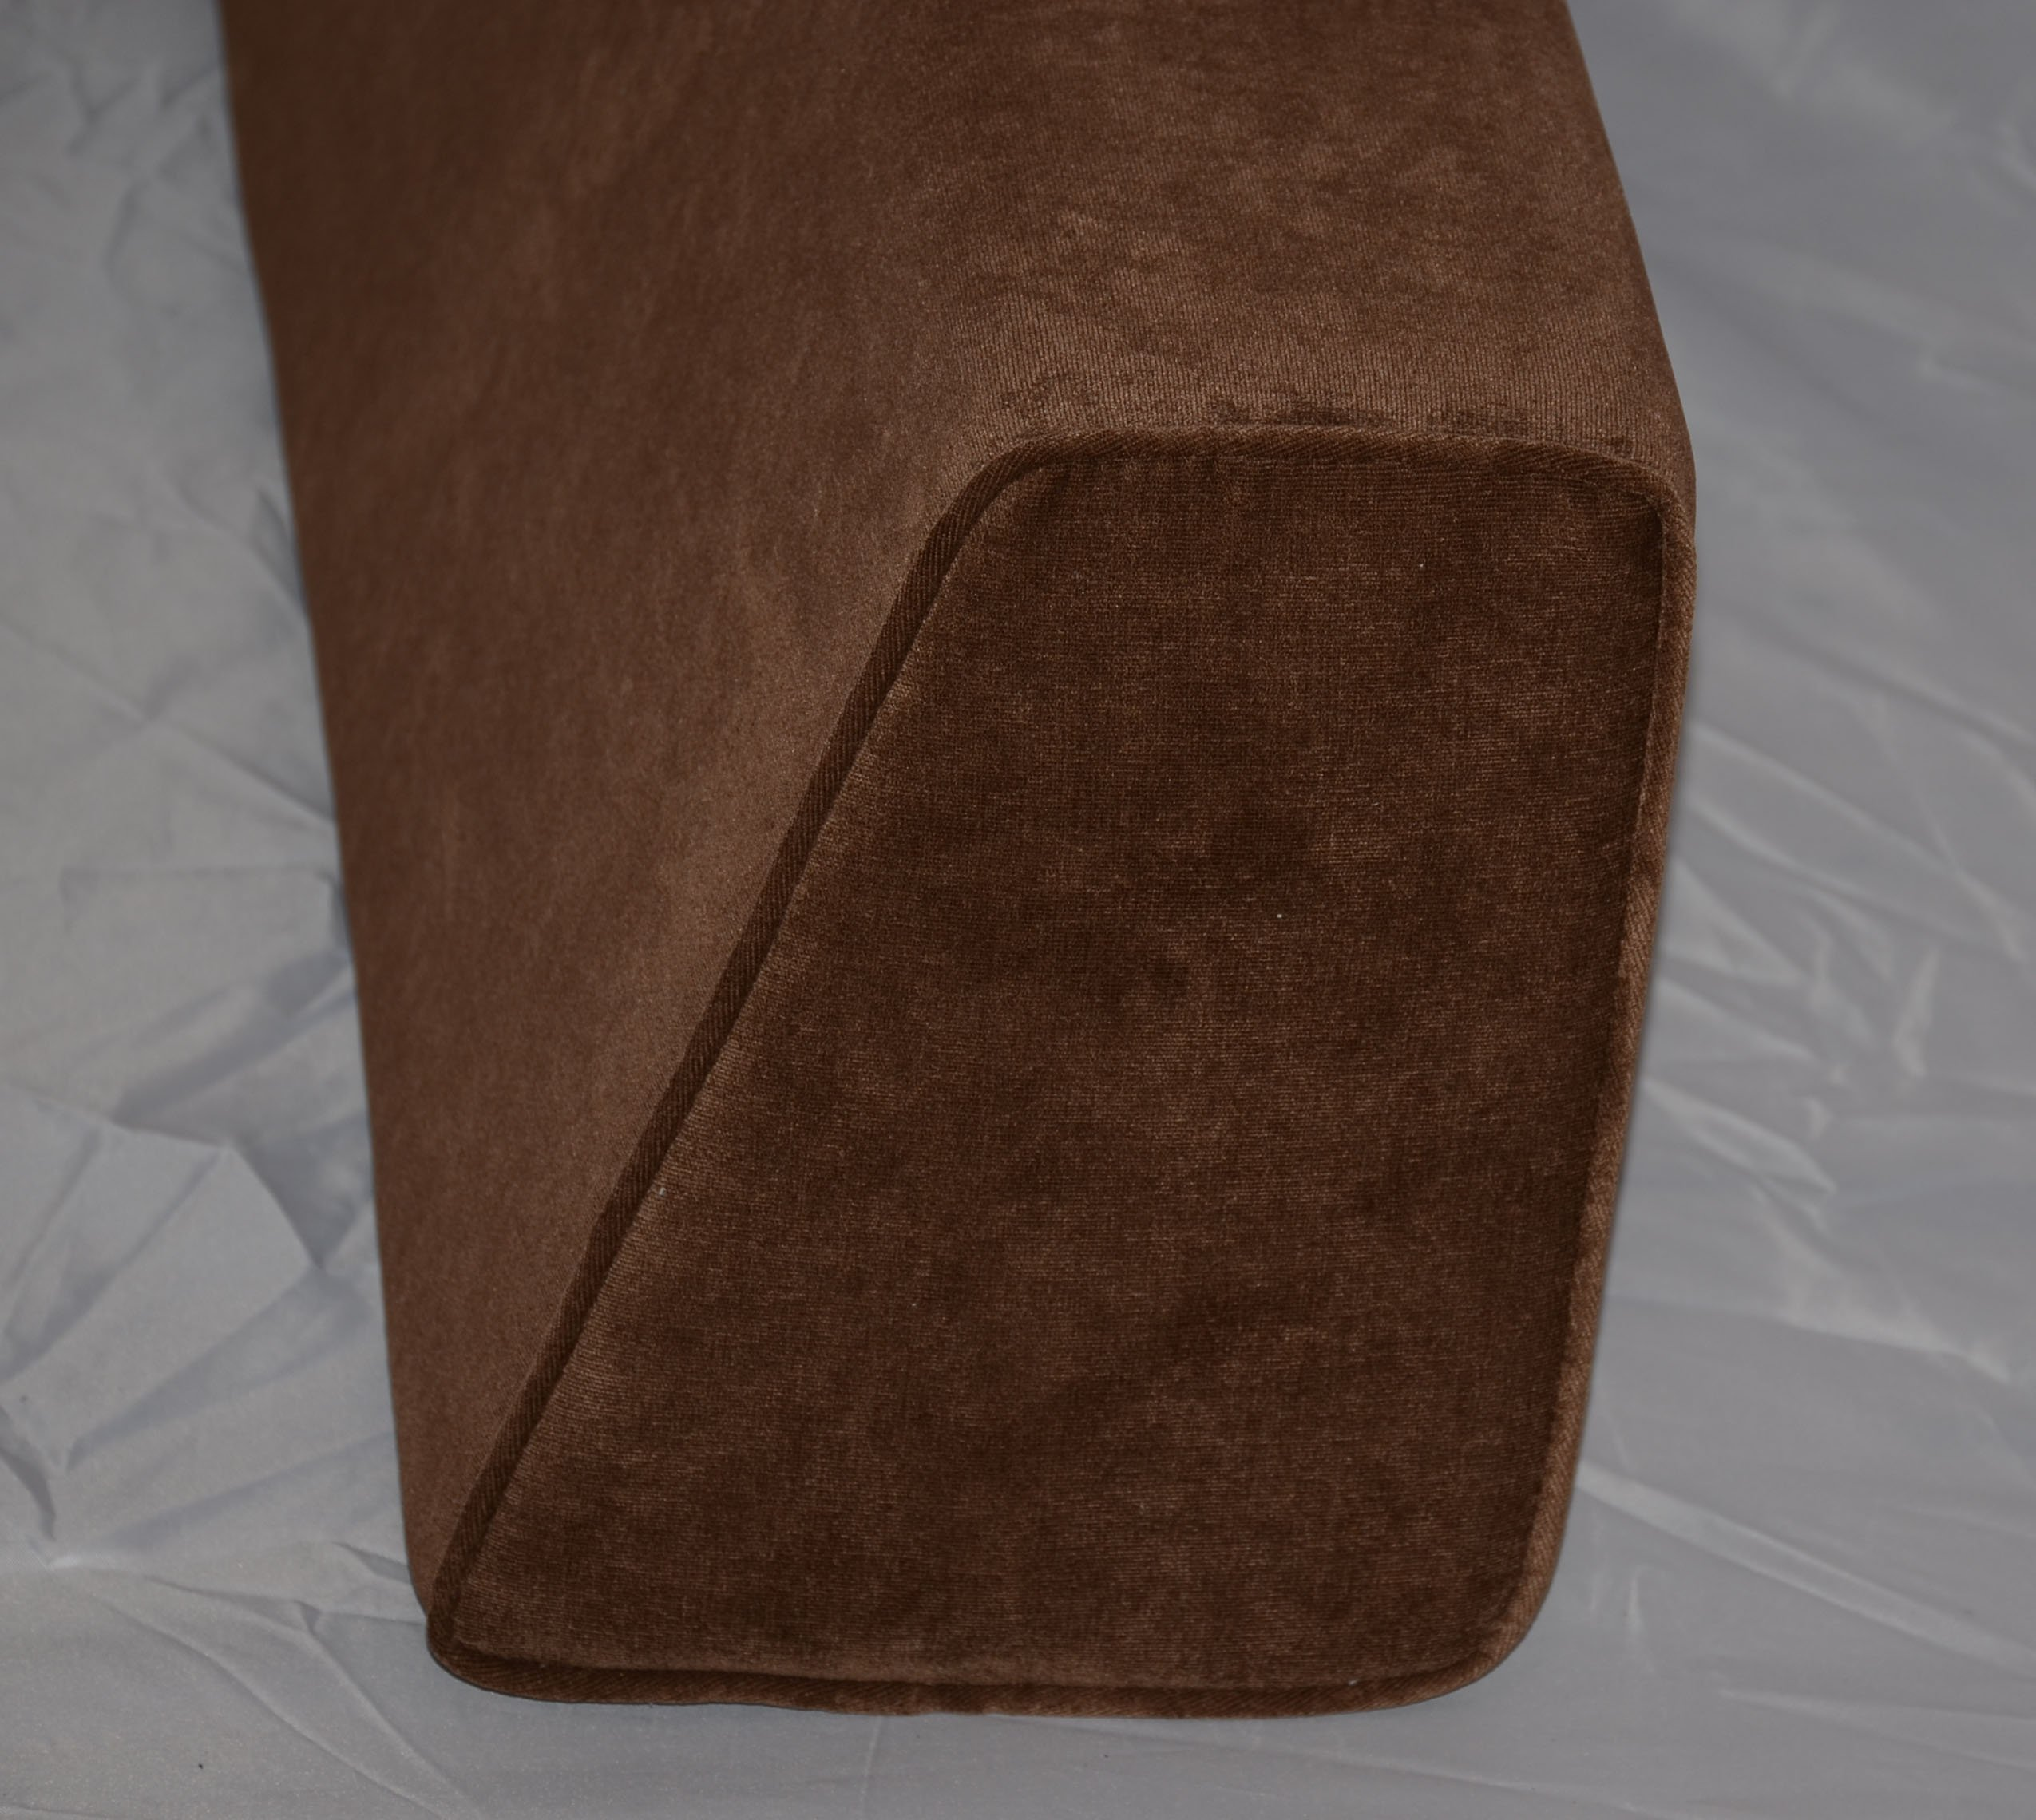 DQP Wedge Bolster Cover (Antique Velvet-Chocolate) by DQP